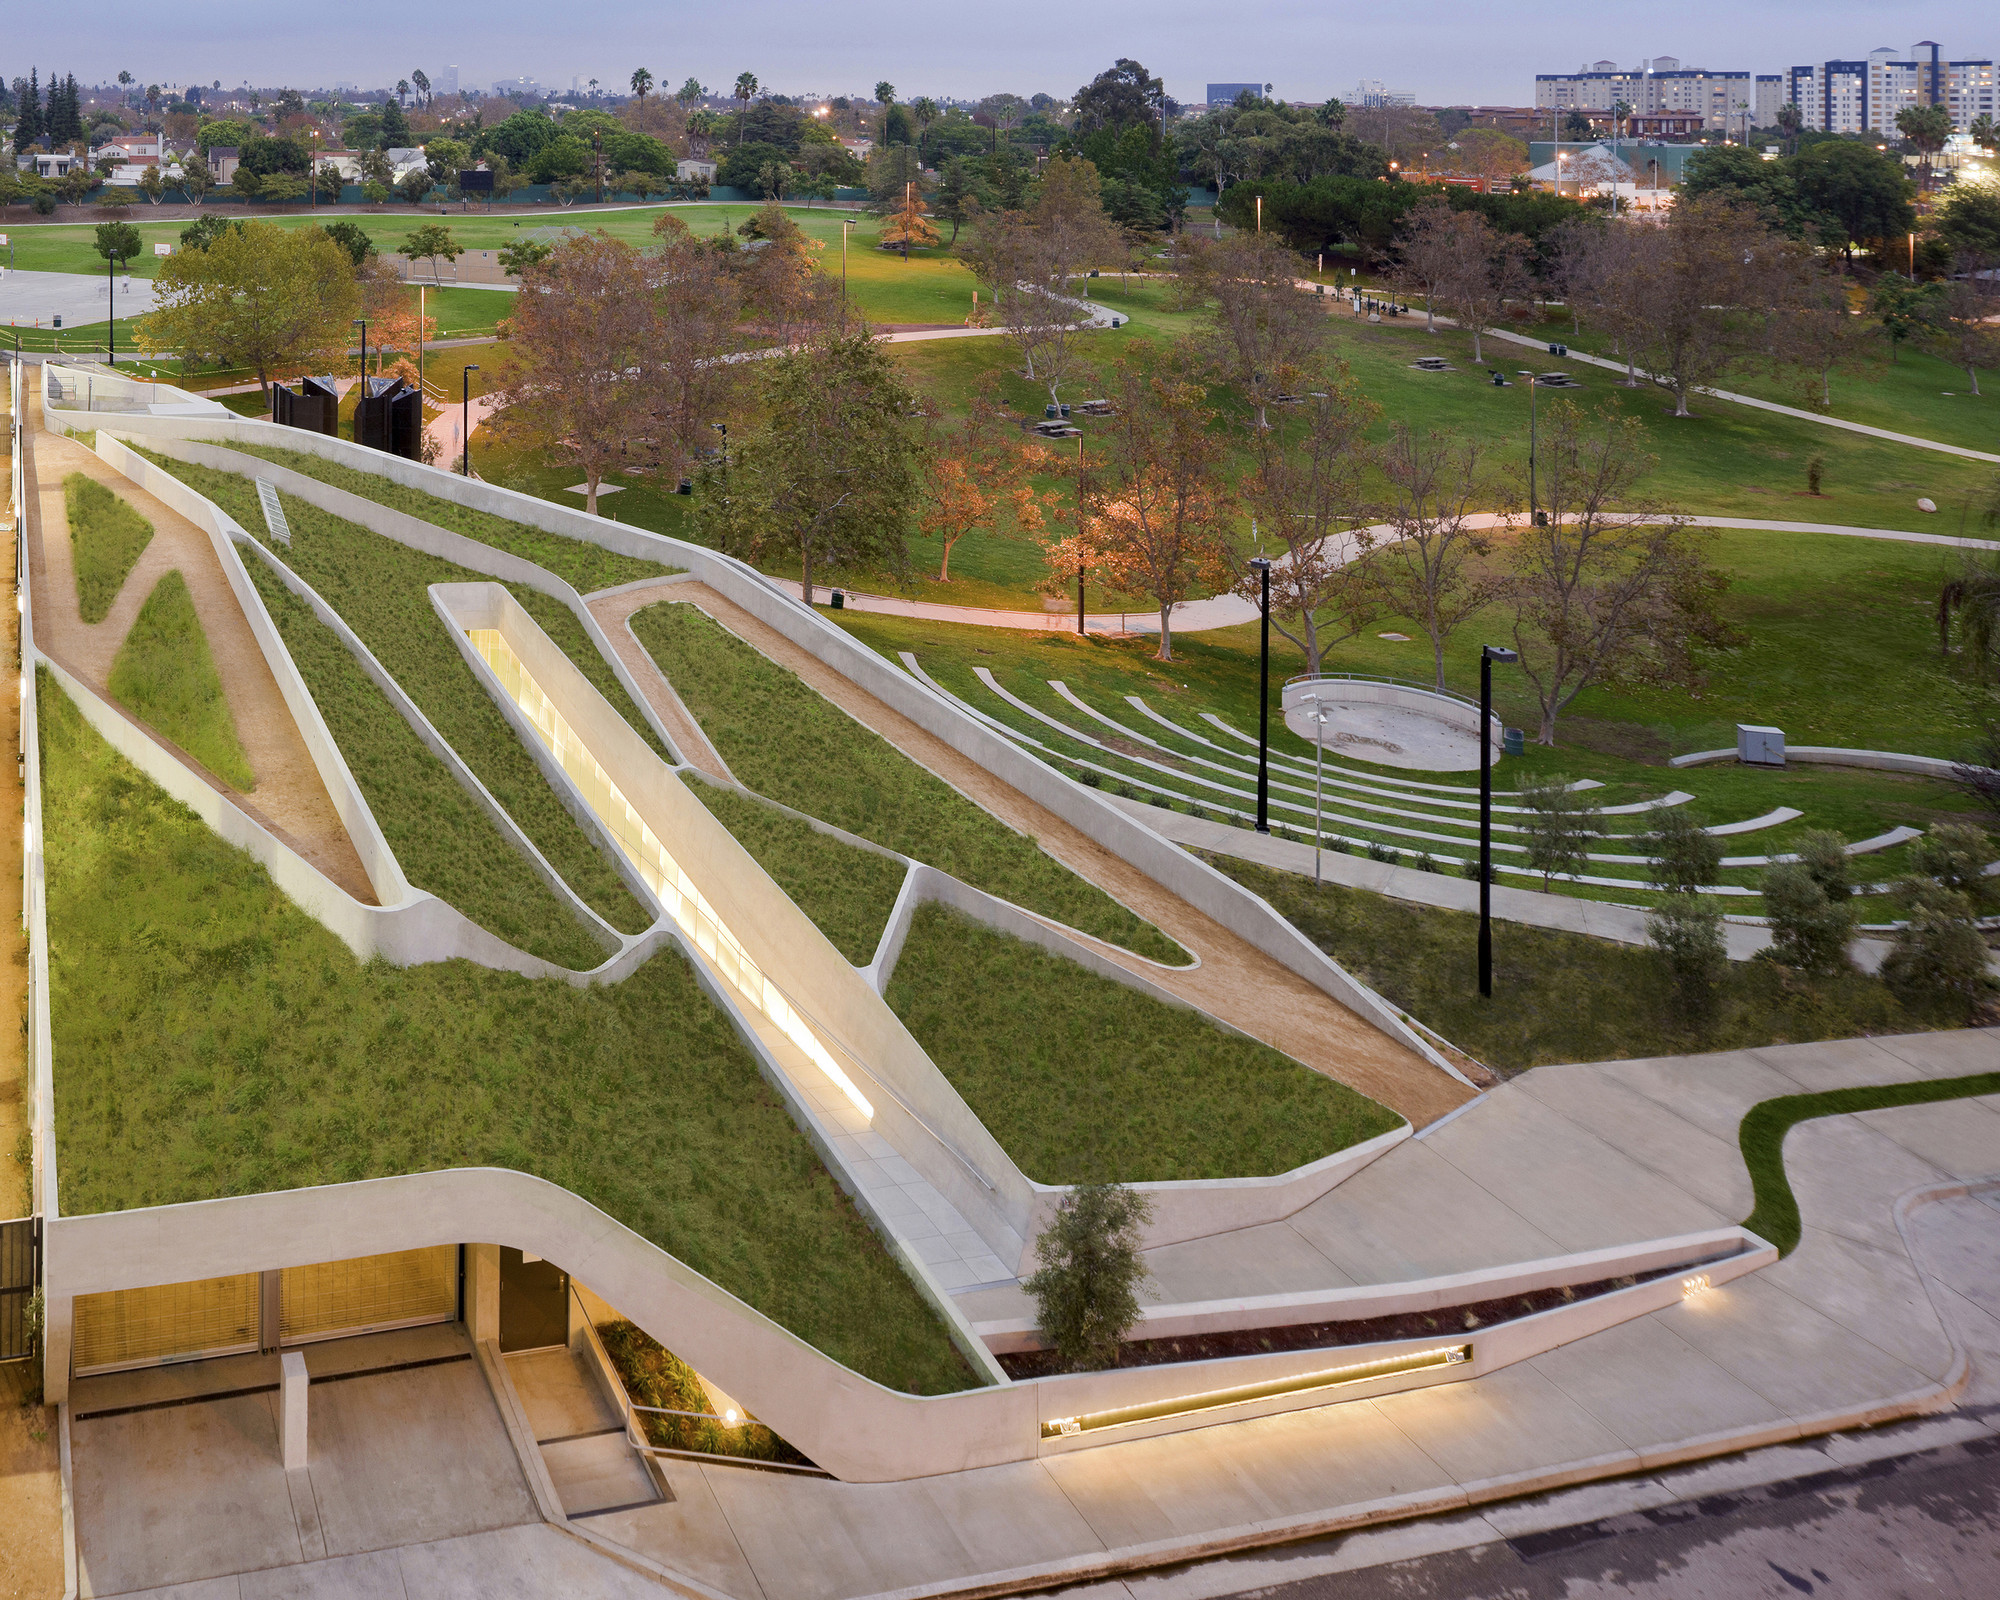 The Los Angeles Museum of the Holocaust / Belzberg Architects © Iwan Baan